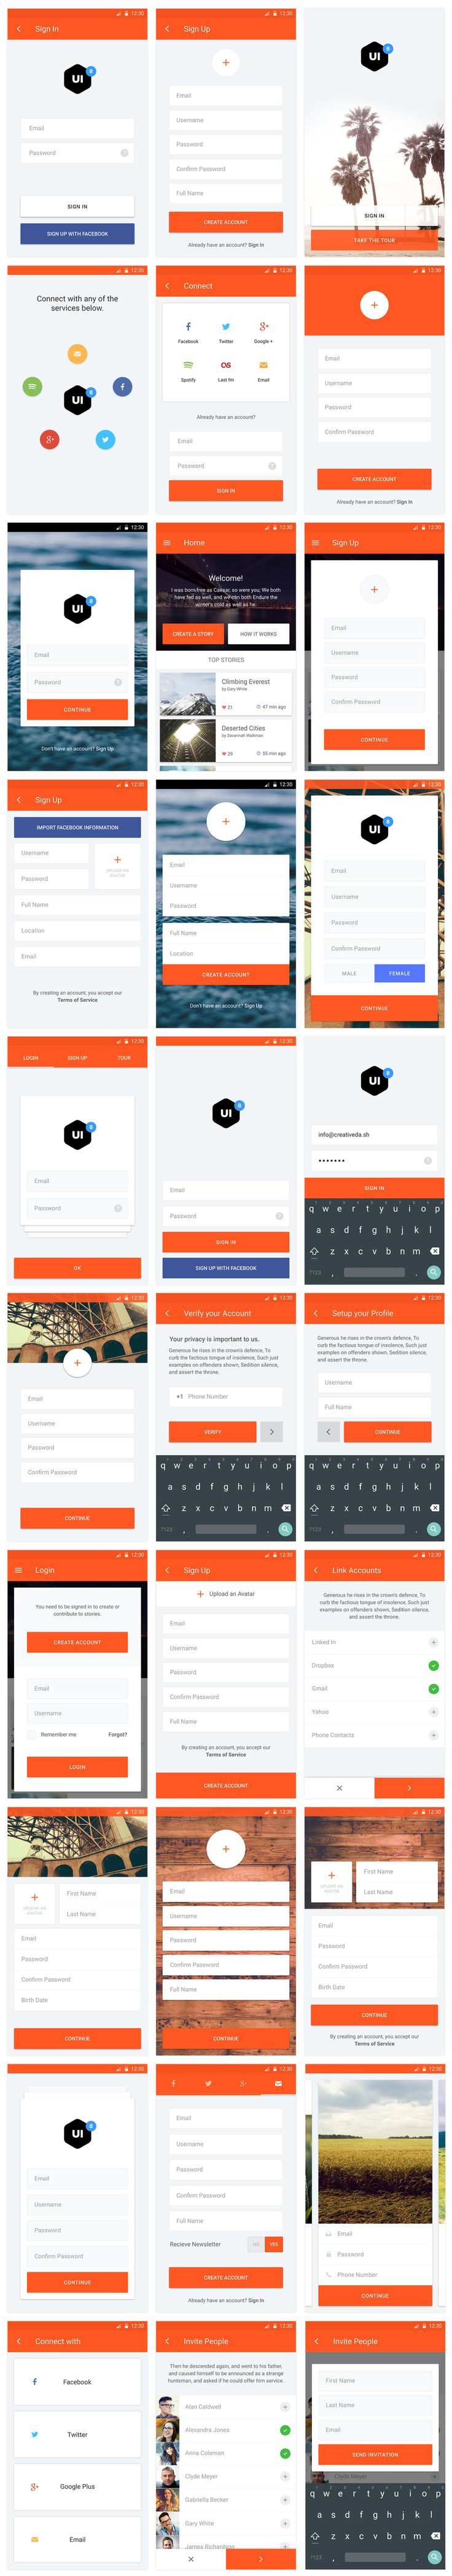 Material UI Kit https://ui8.net/product/material-ui-kit